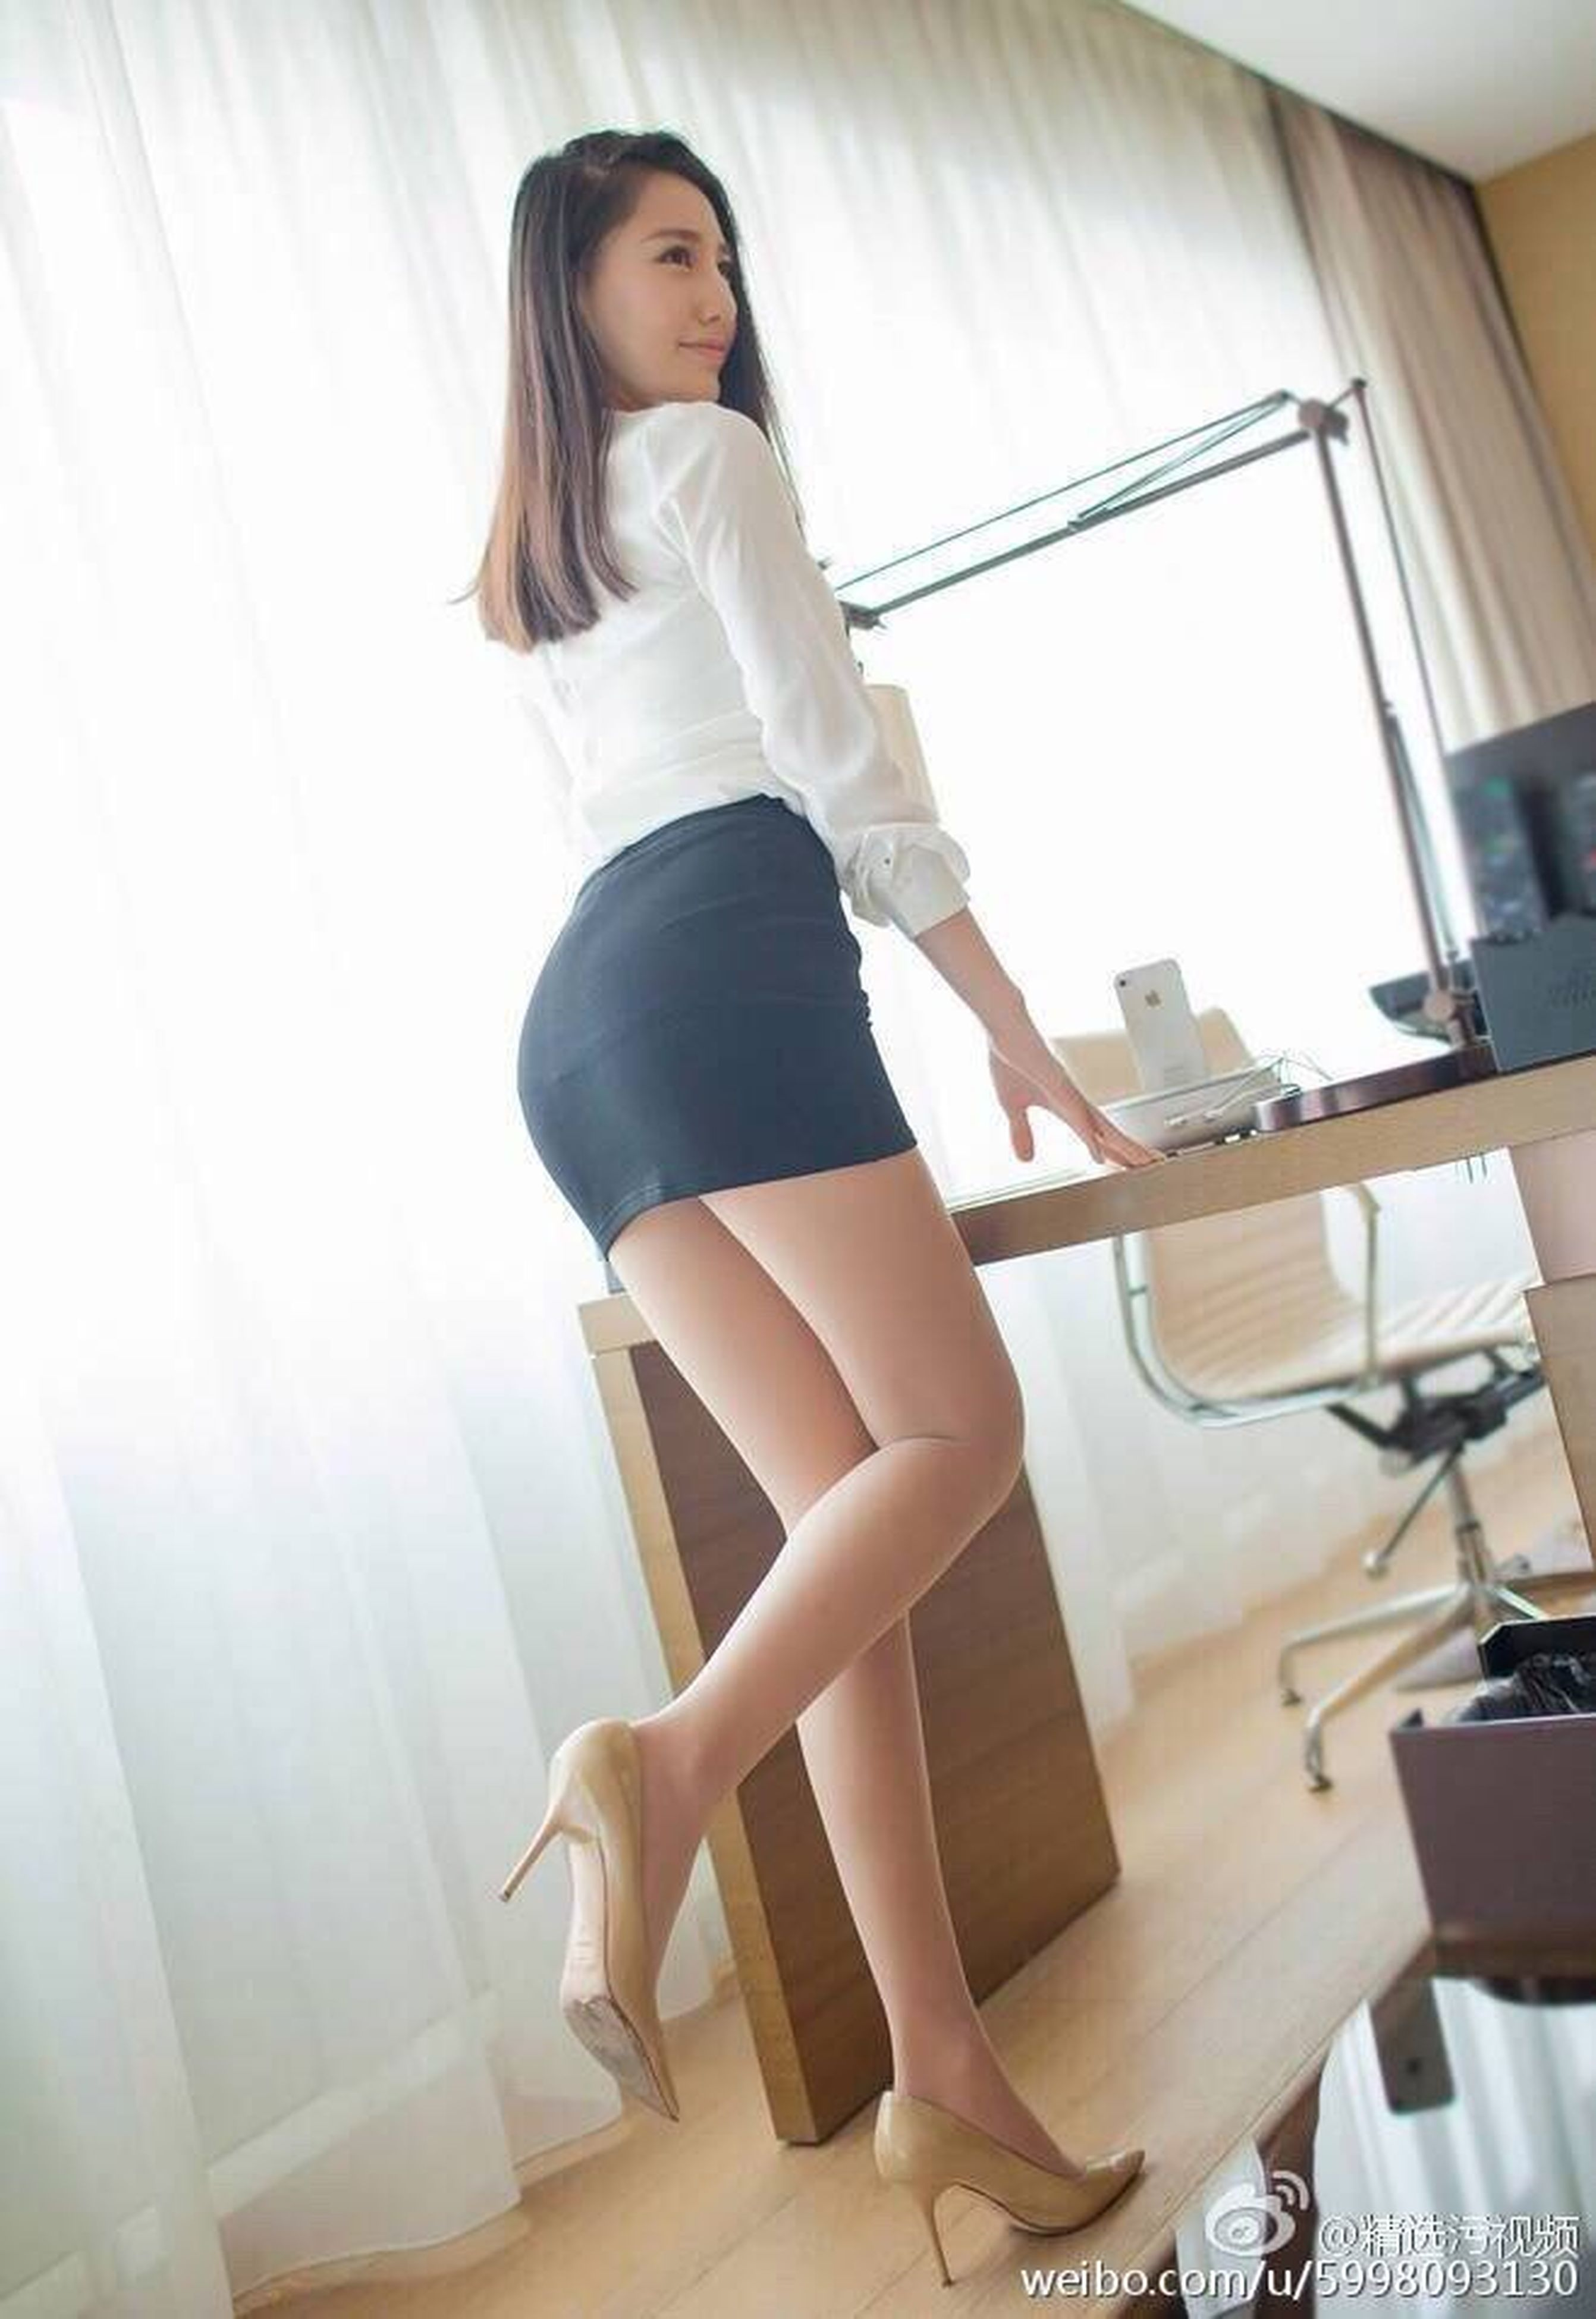 indoors, lifestyles, young women, young adult, leisure activity, full length, home interior, high heels, casual clothing, person, confidence, fashionable, long hair, looking at camera, day